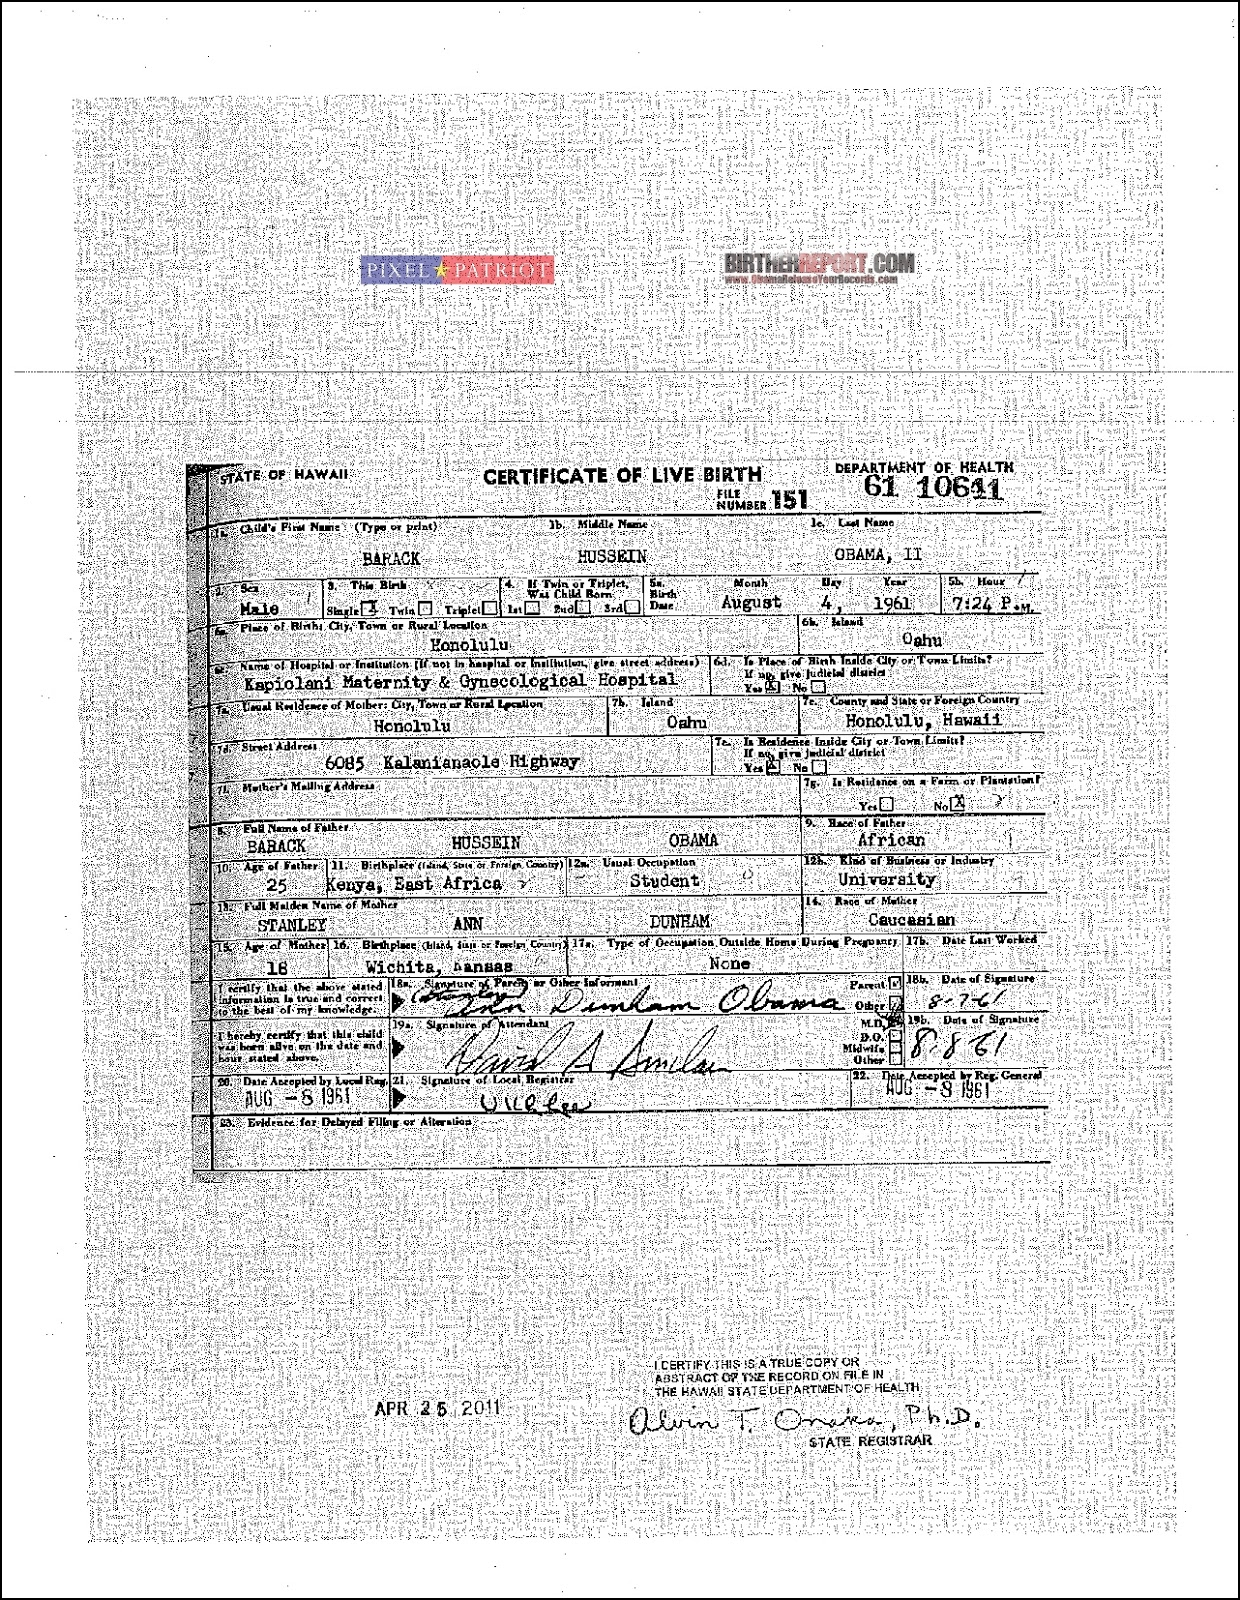 Three birth certificates now linked to obama eligibility case mcinnish v chapman obama birth certificate alabama democratic party amicus brief pg 33 exhibit b 4232013 aiddatafo Images